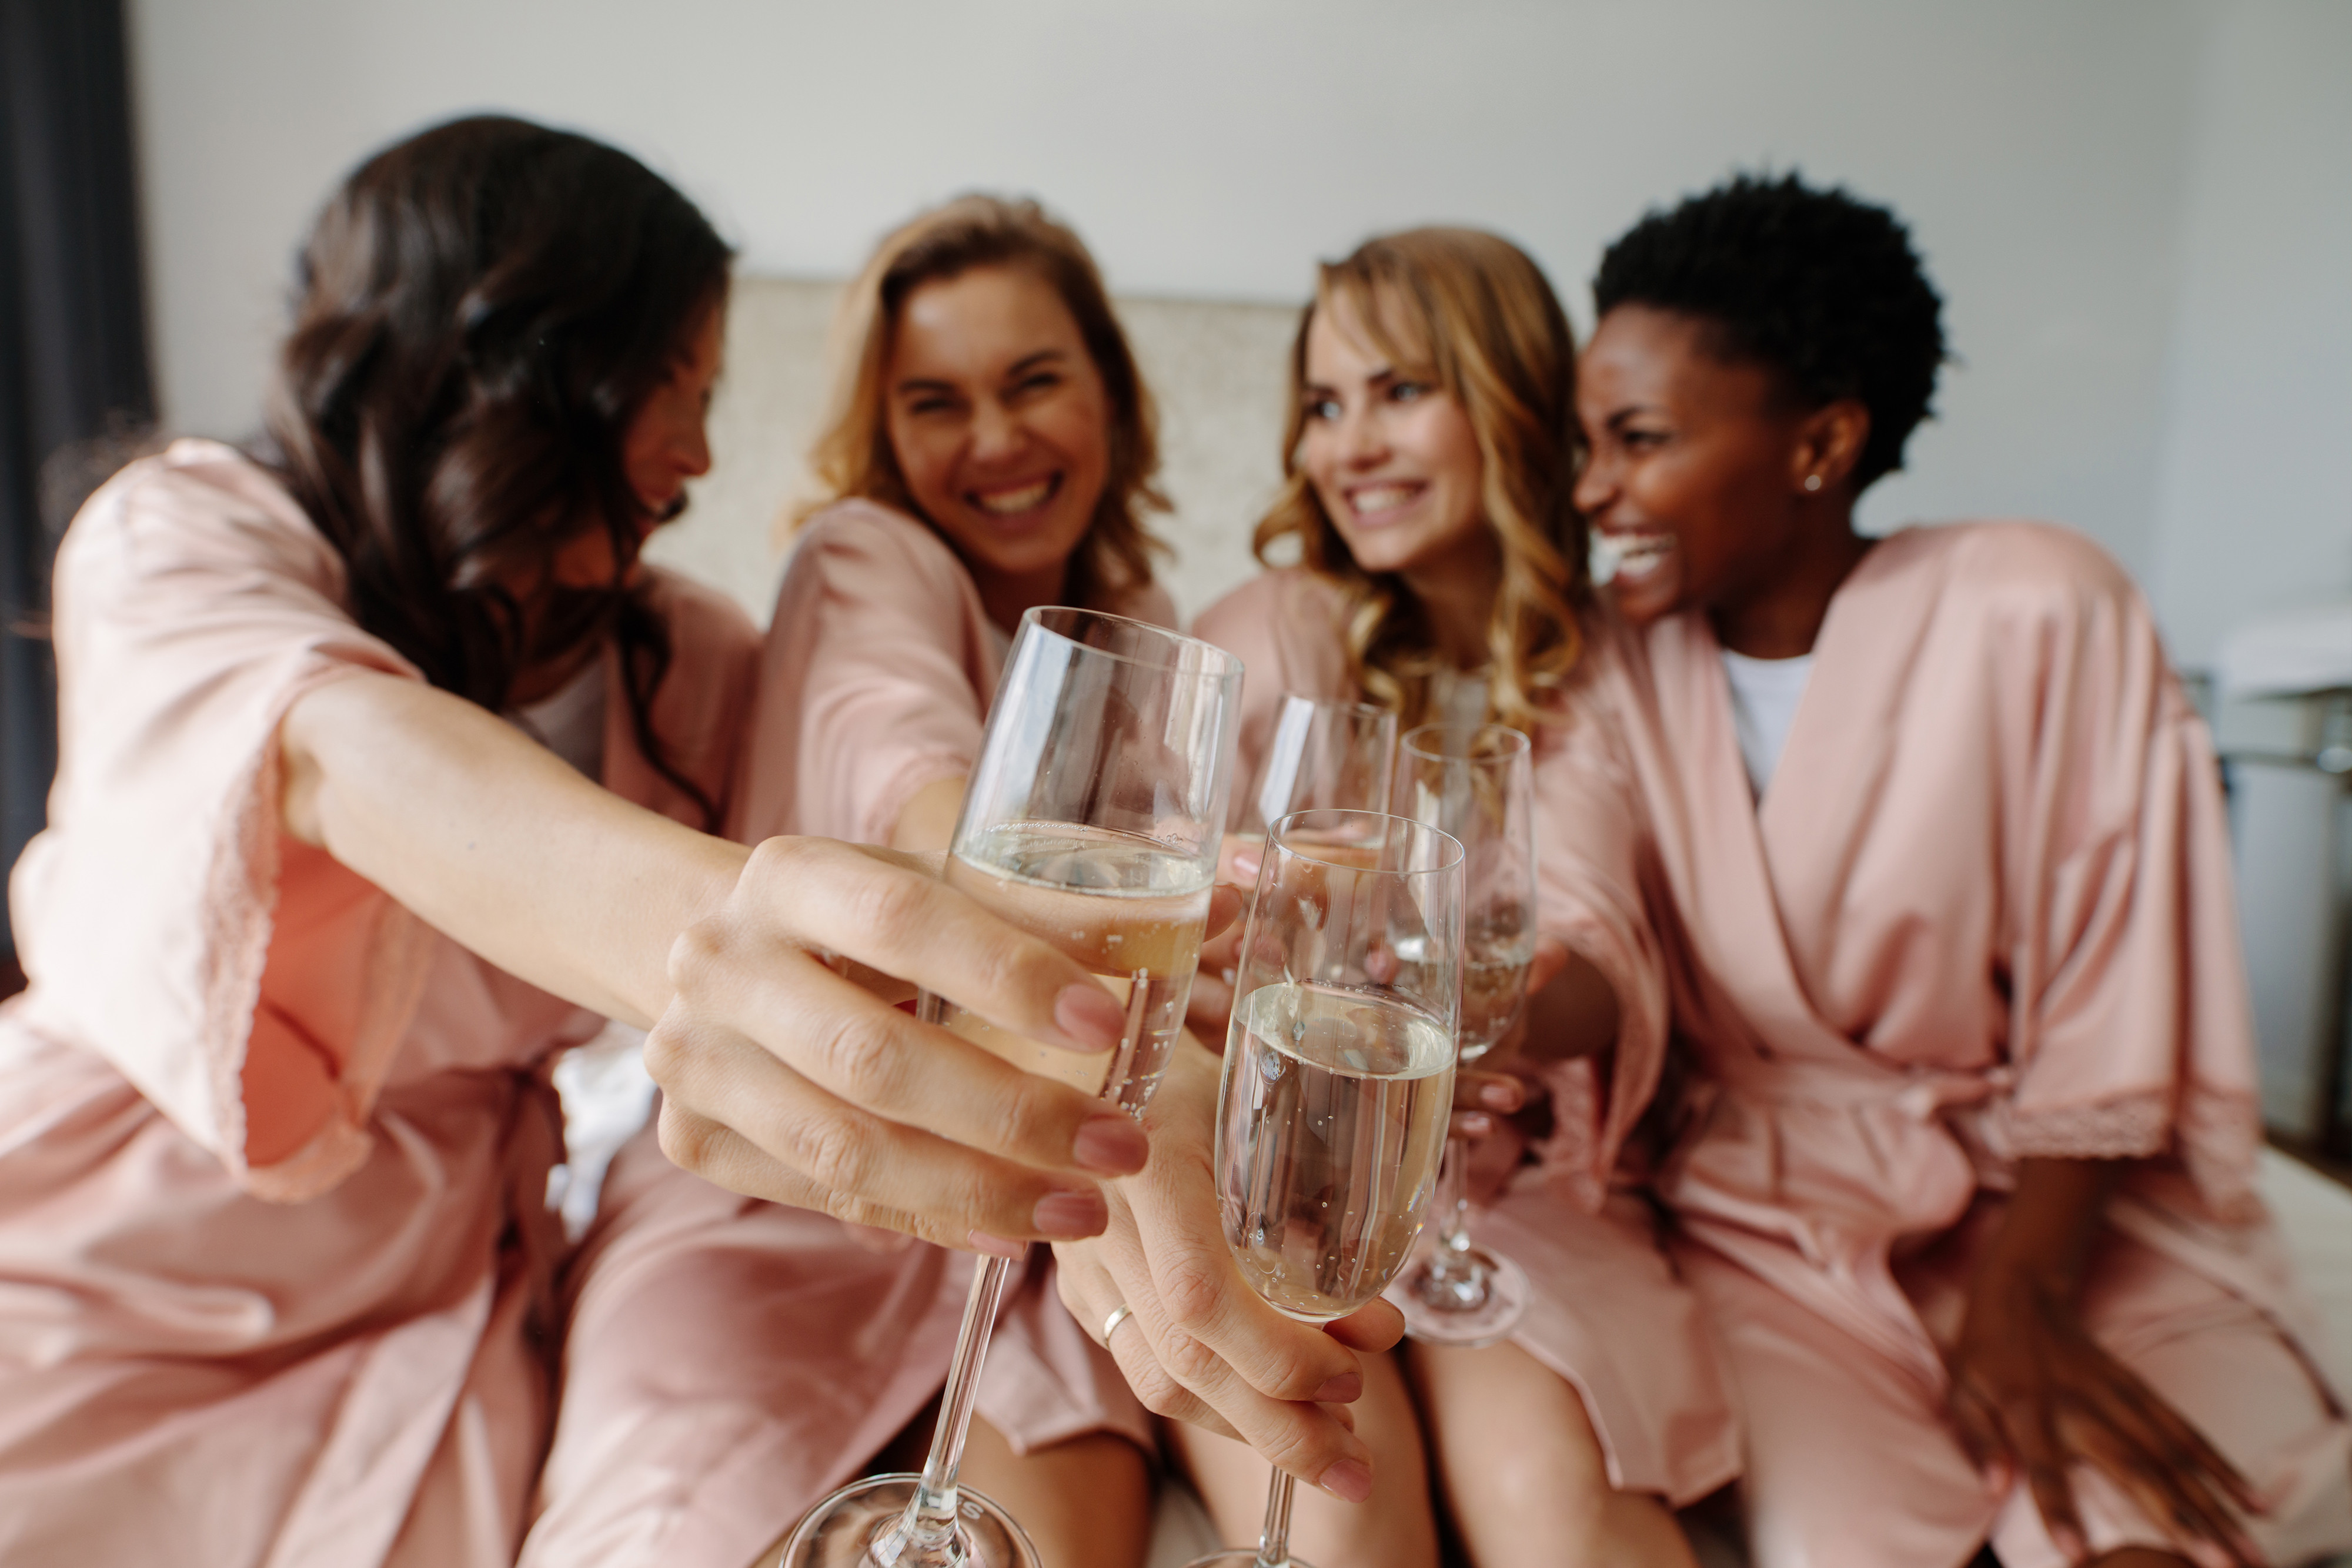 Bachelorette Party Packages That Rock - Branson Bachelorette Party